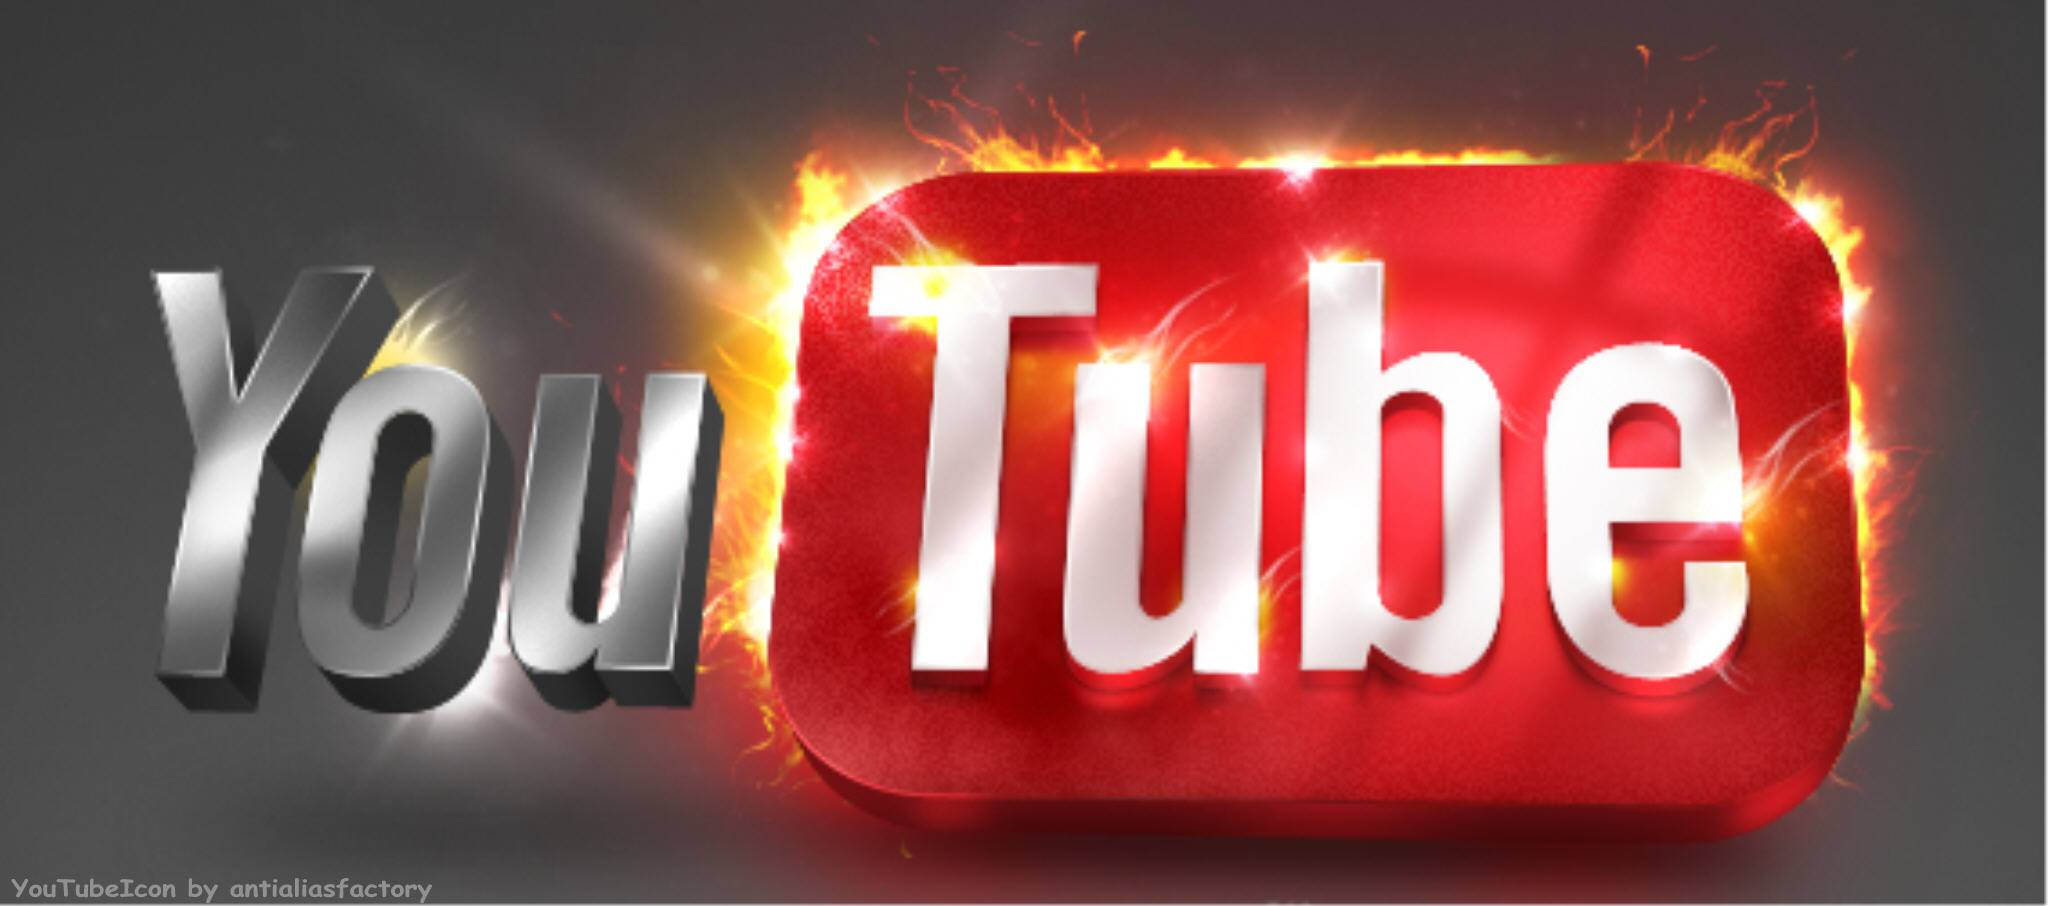 Cool youtube wallpapers wallpapersafari - Cool youtube pictures ...